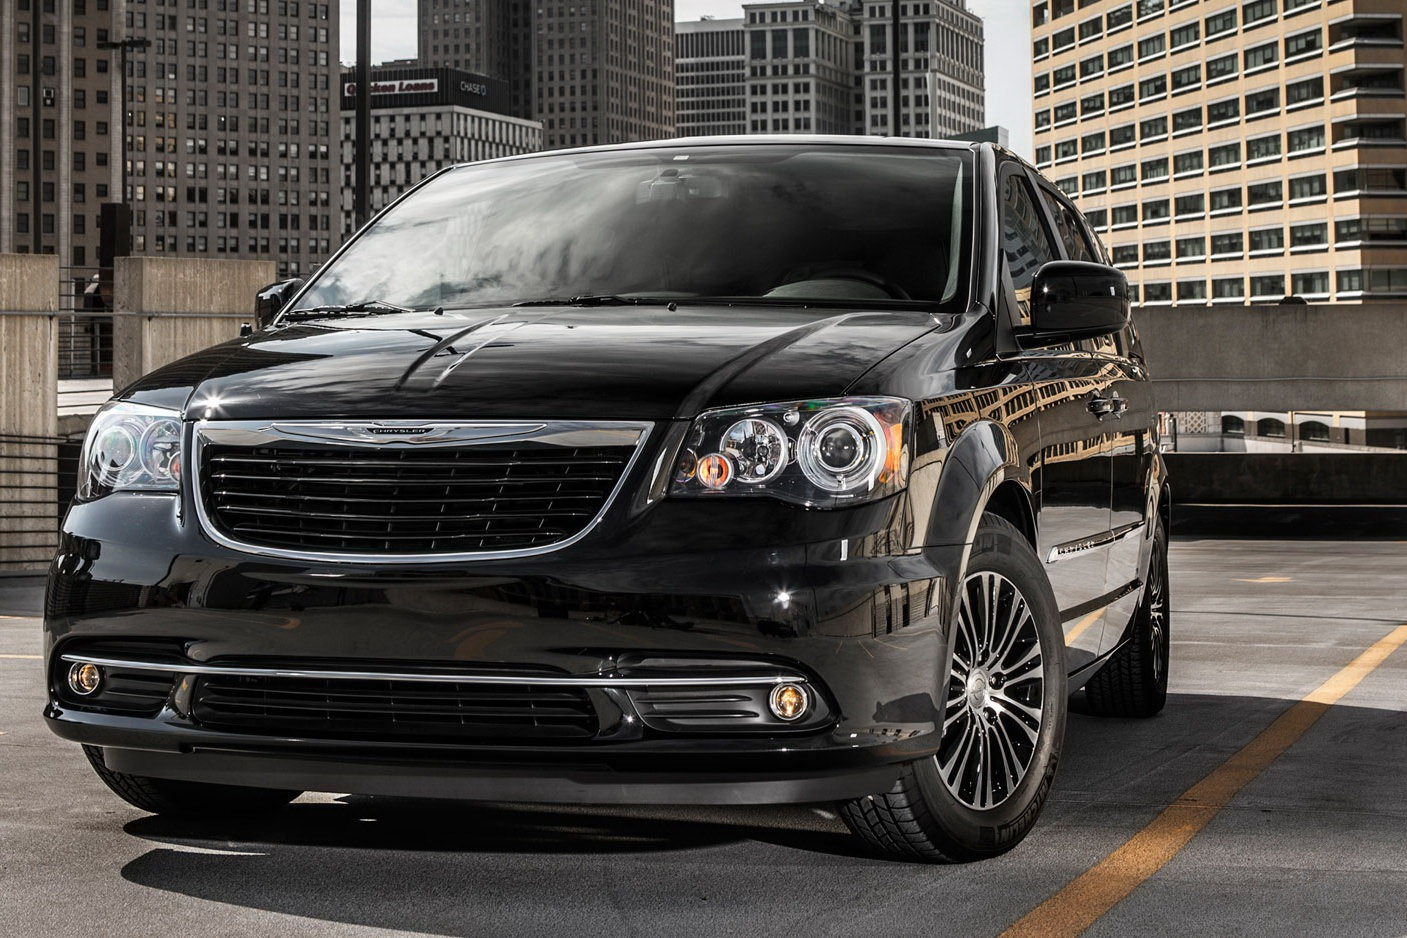 new 2013 chrysler town and country s edition heading to the la auto show user manual guide pdf. Black Bedroom Furniture Sets. Home Design Ideas